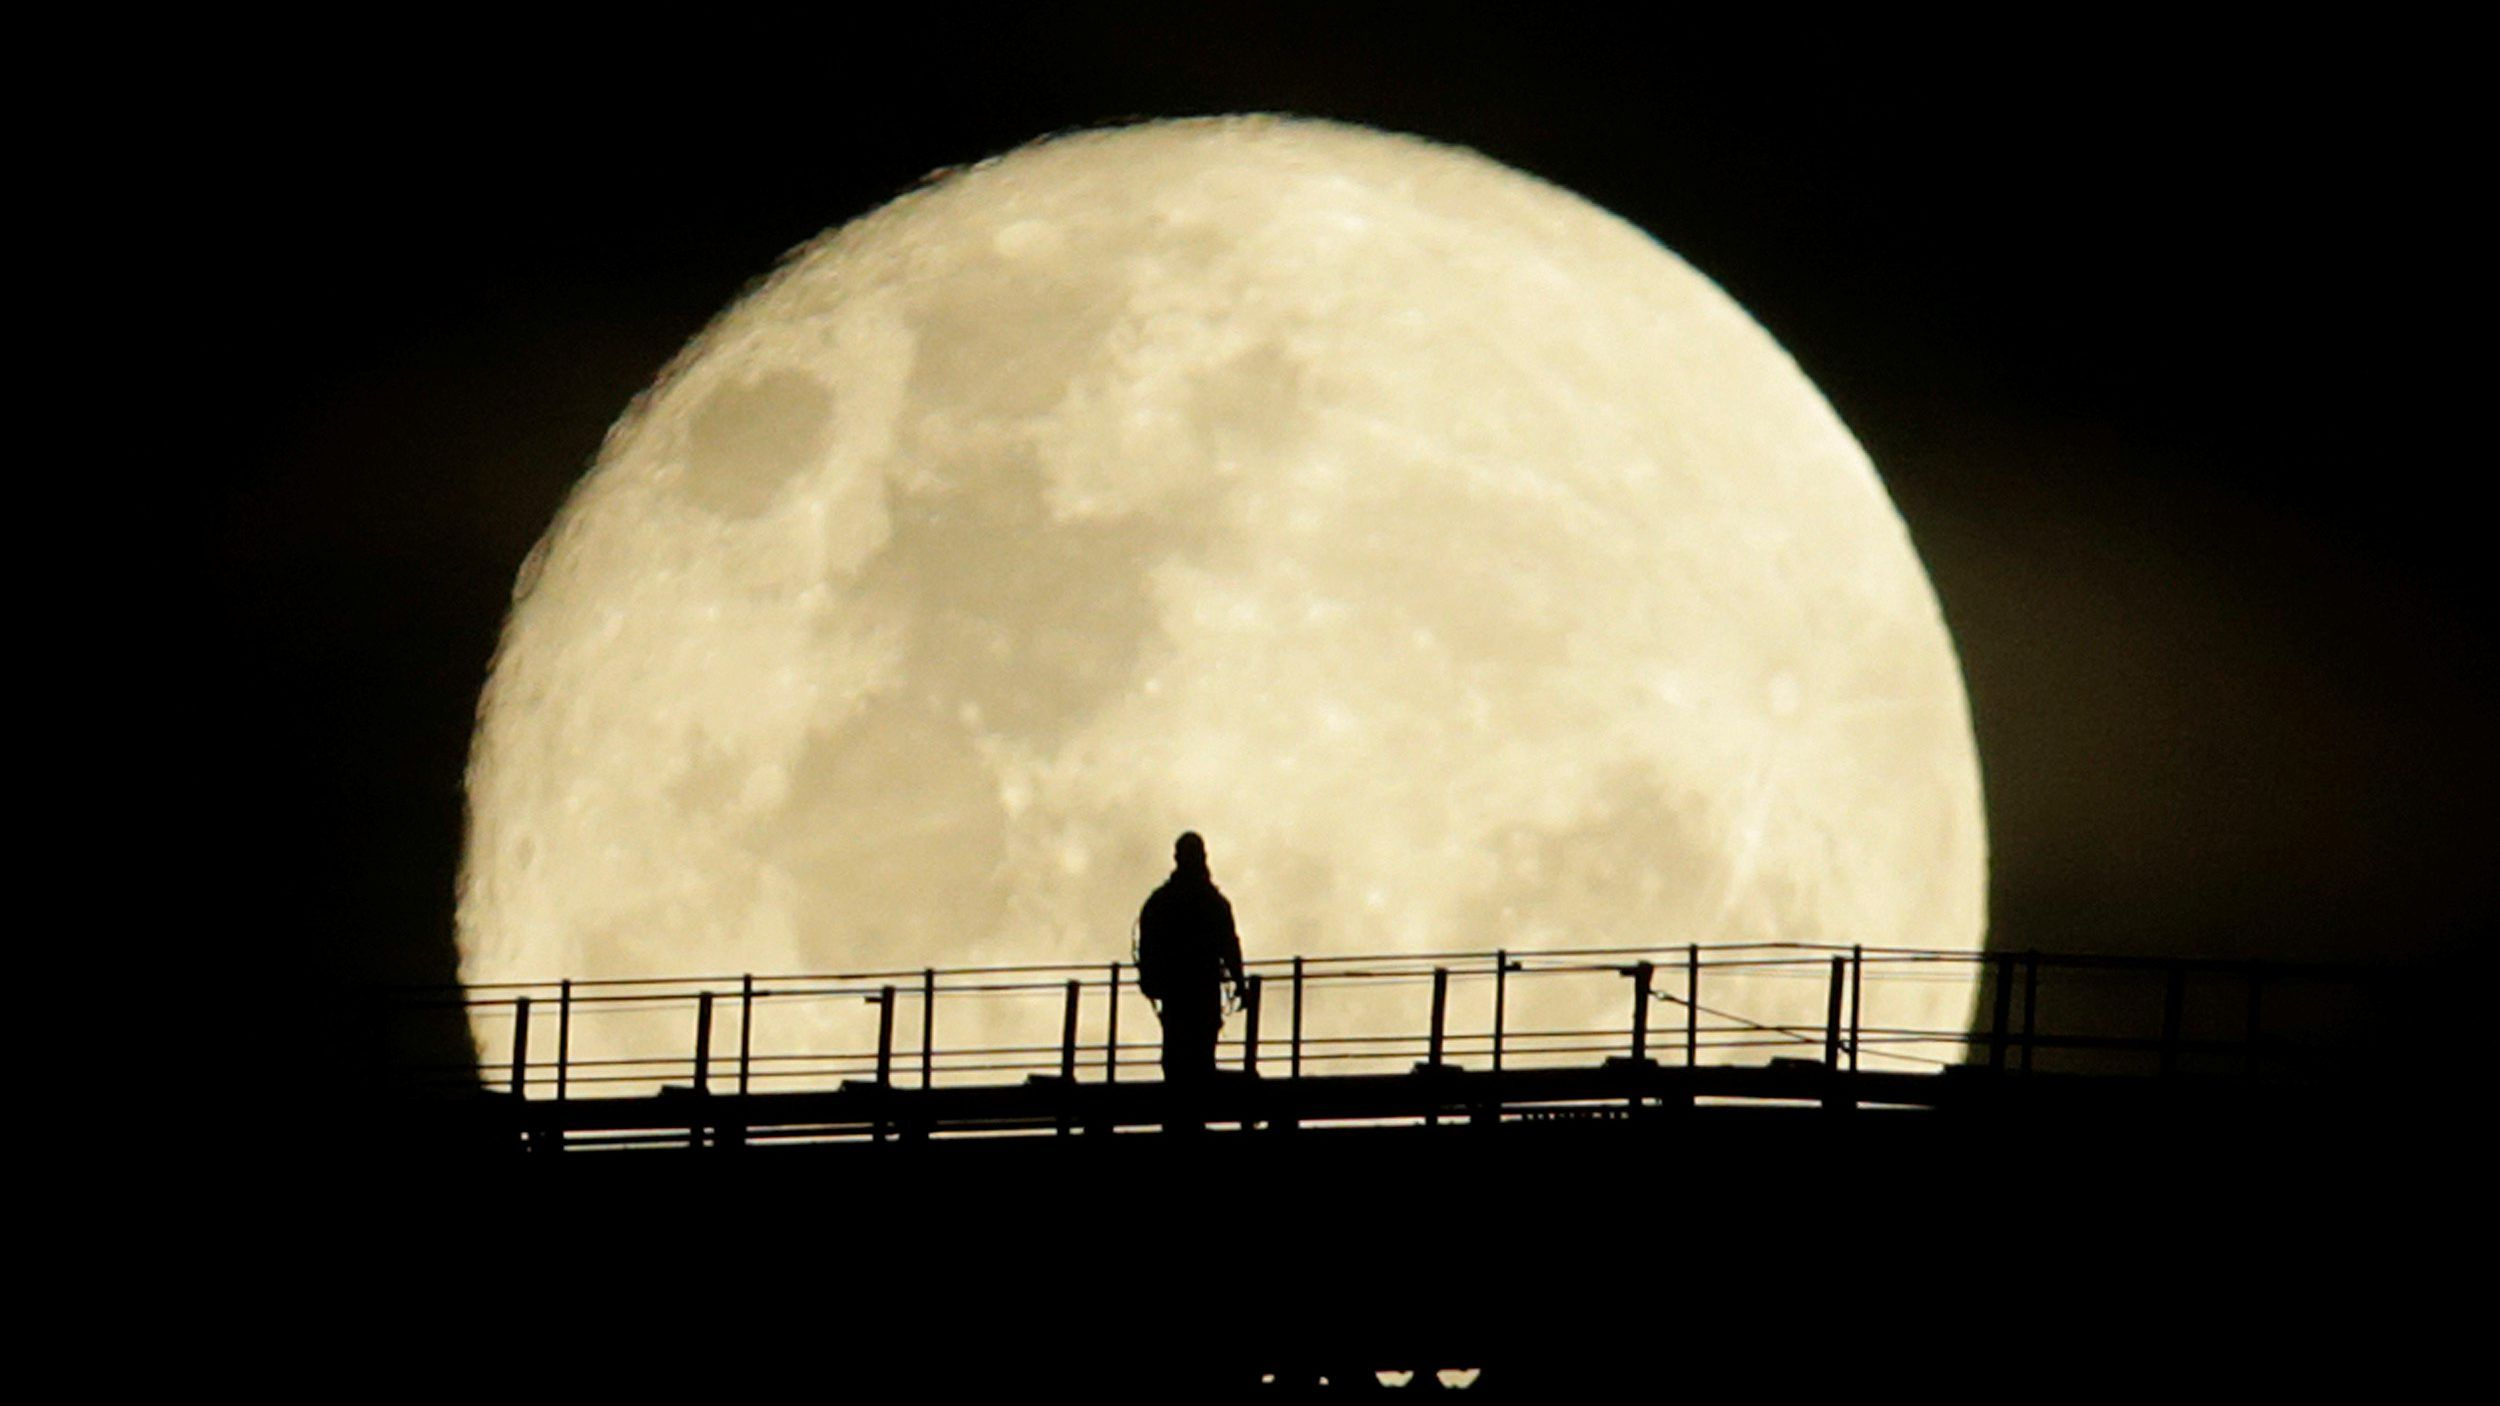 Spectacular Supermoon| A bright ball of light in the sky